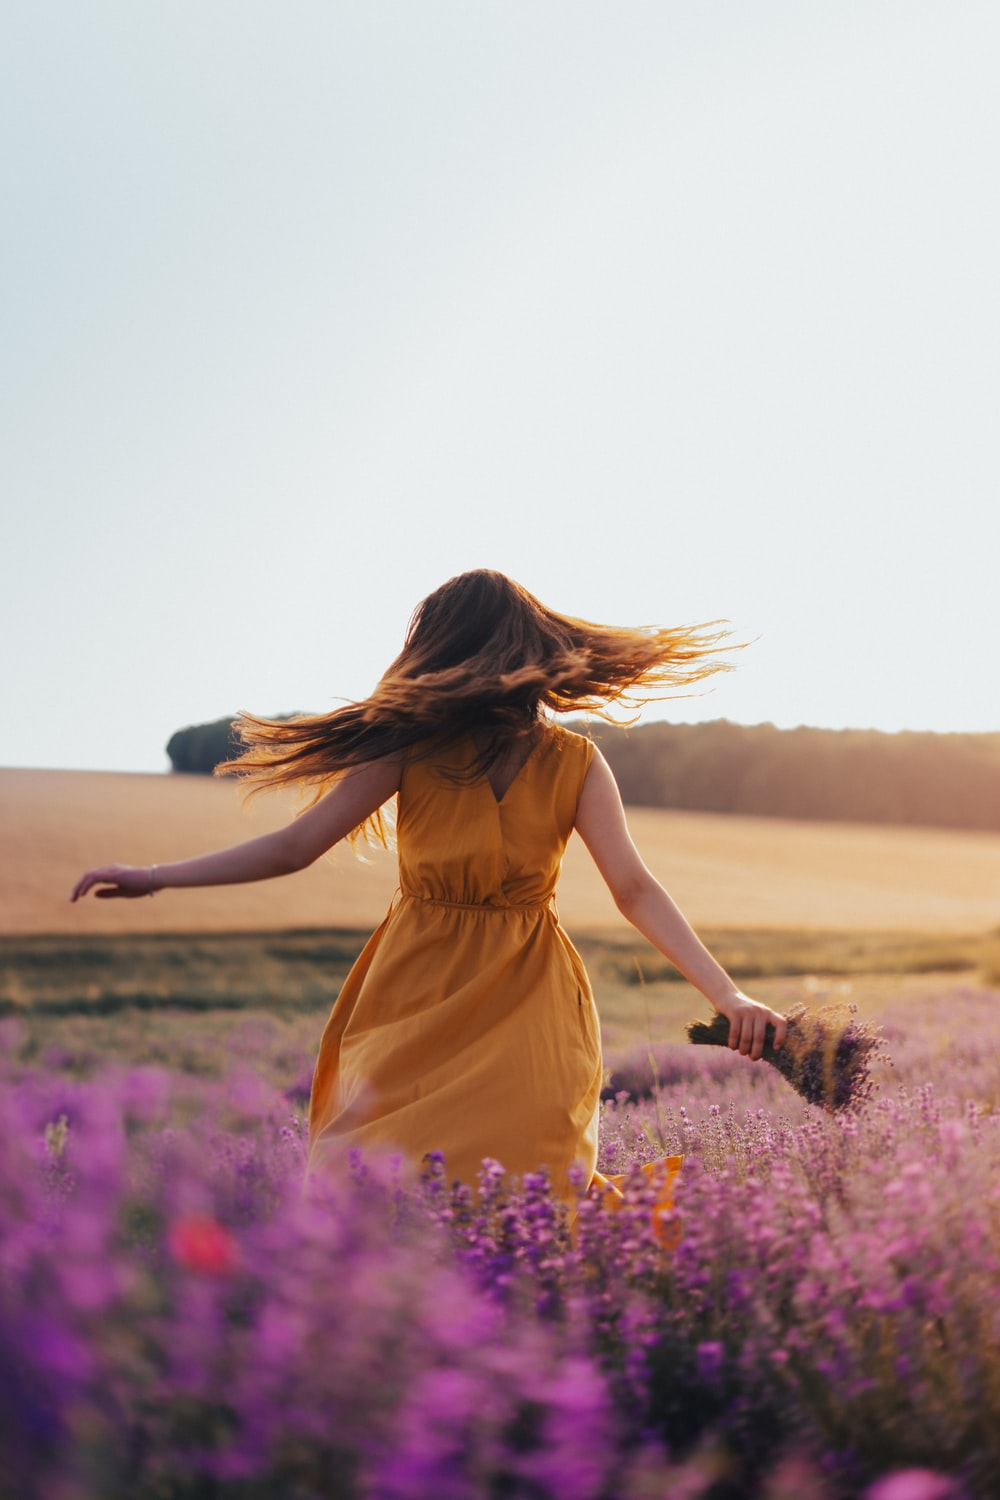 woman in yellow dress standing on purple flower field during daytime